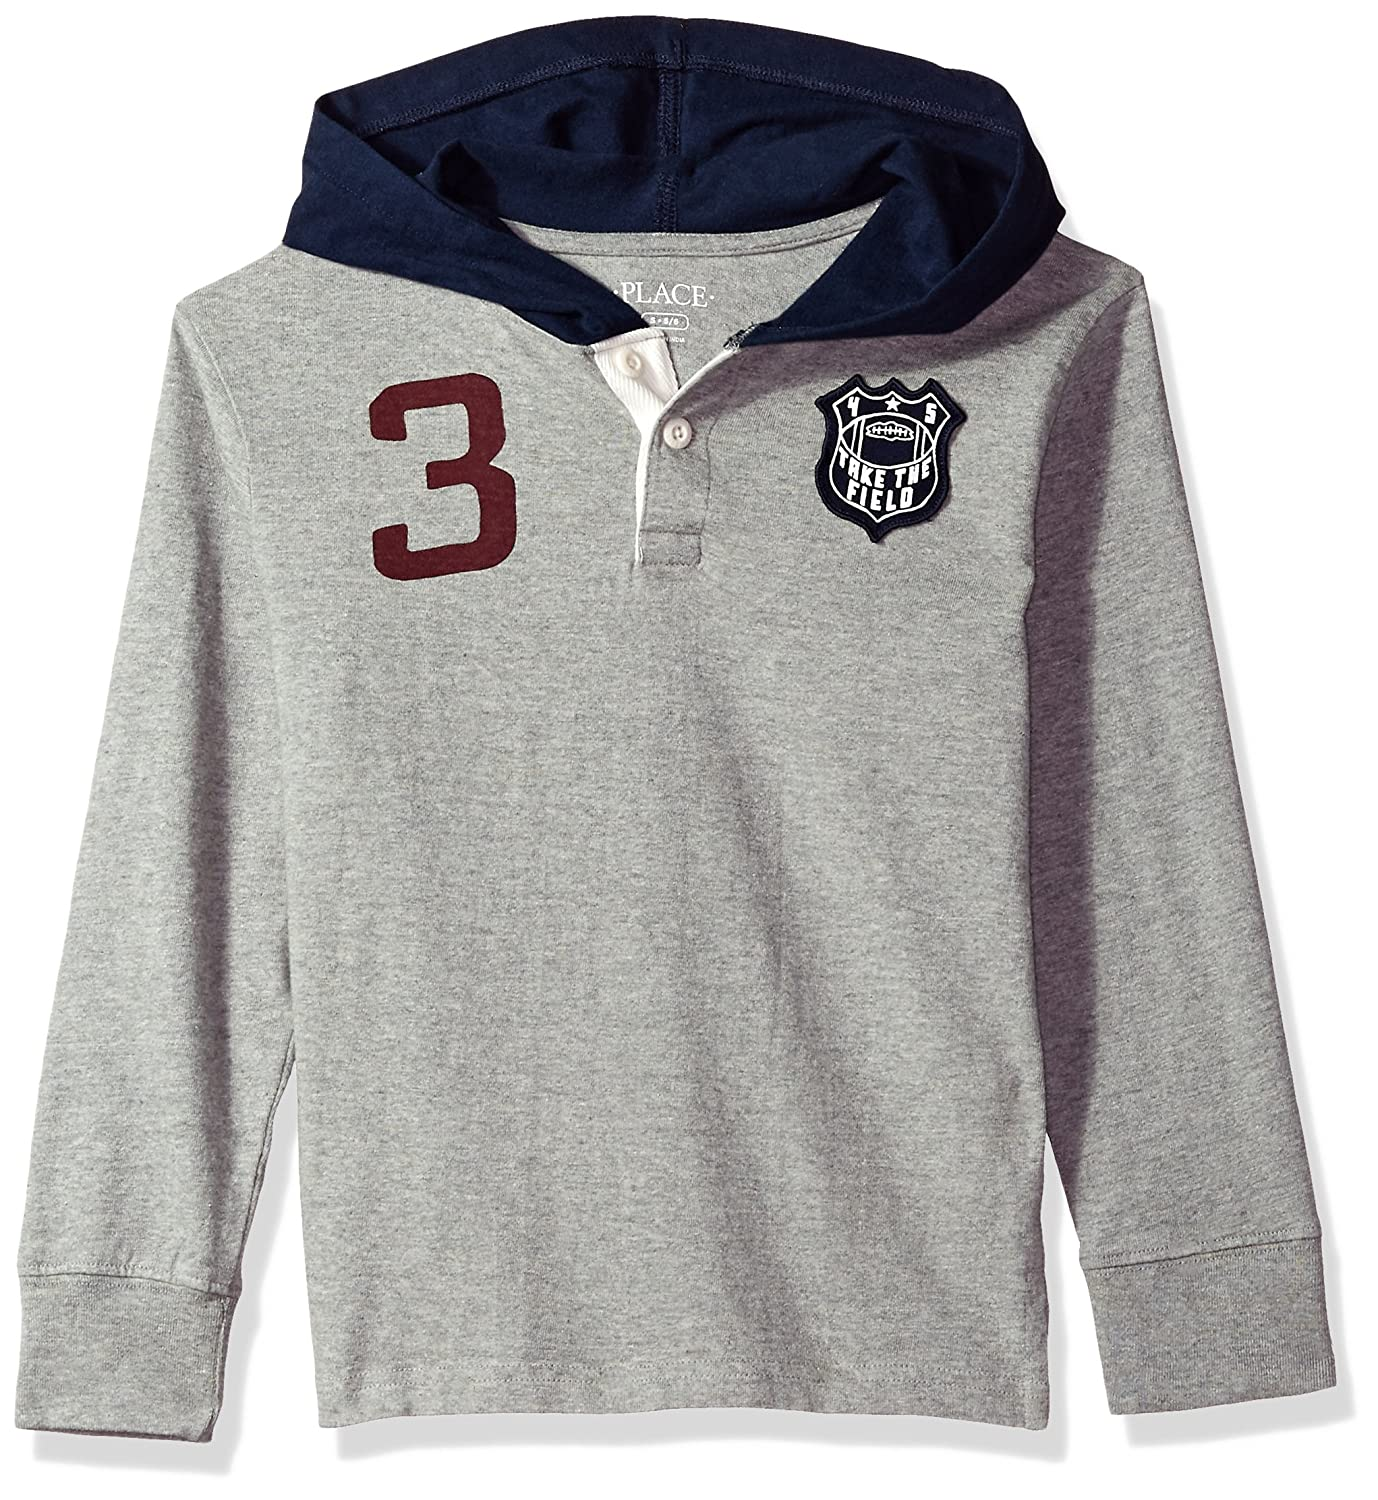 The Children's Place Boys' Long Sleeve Knit Hoodie 2087416012